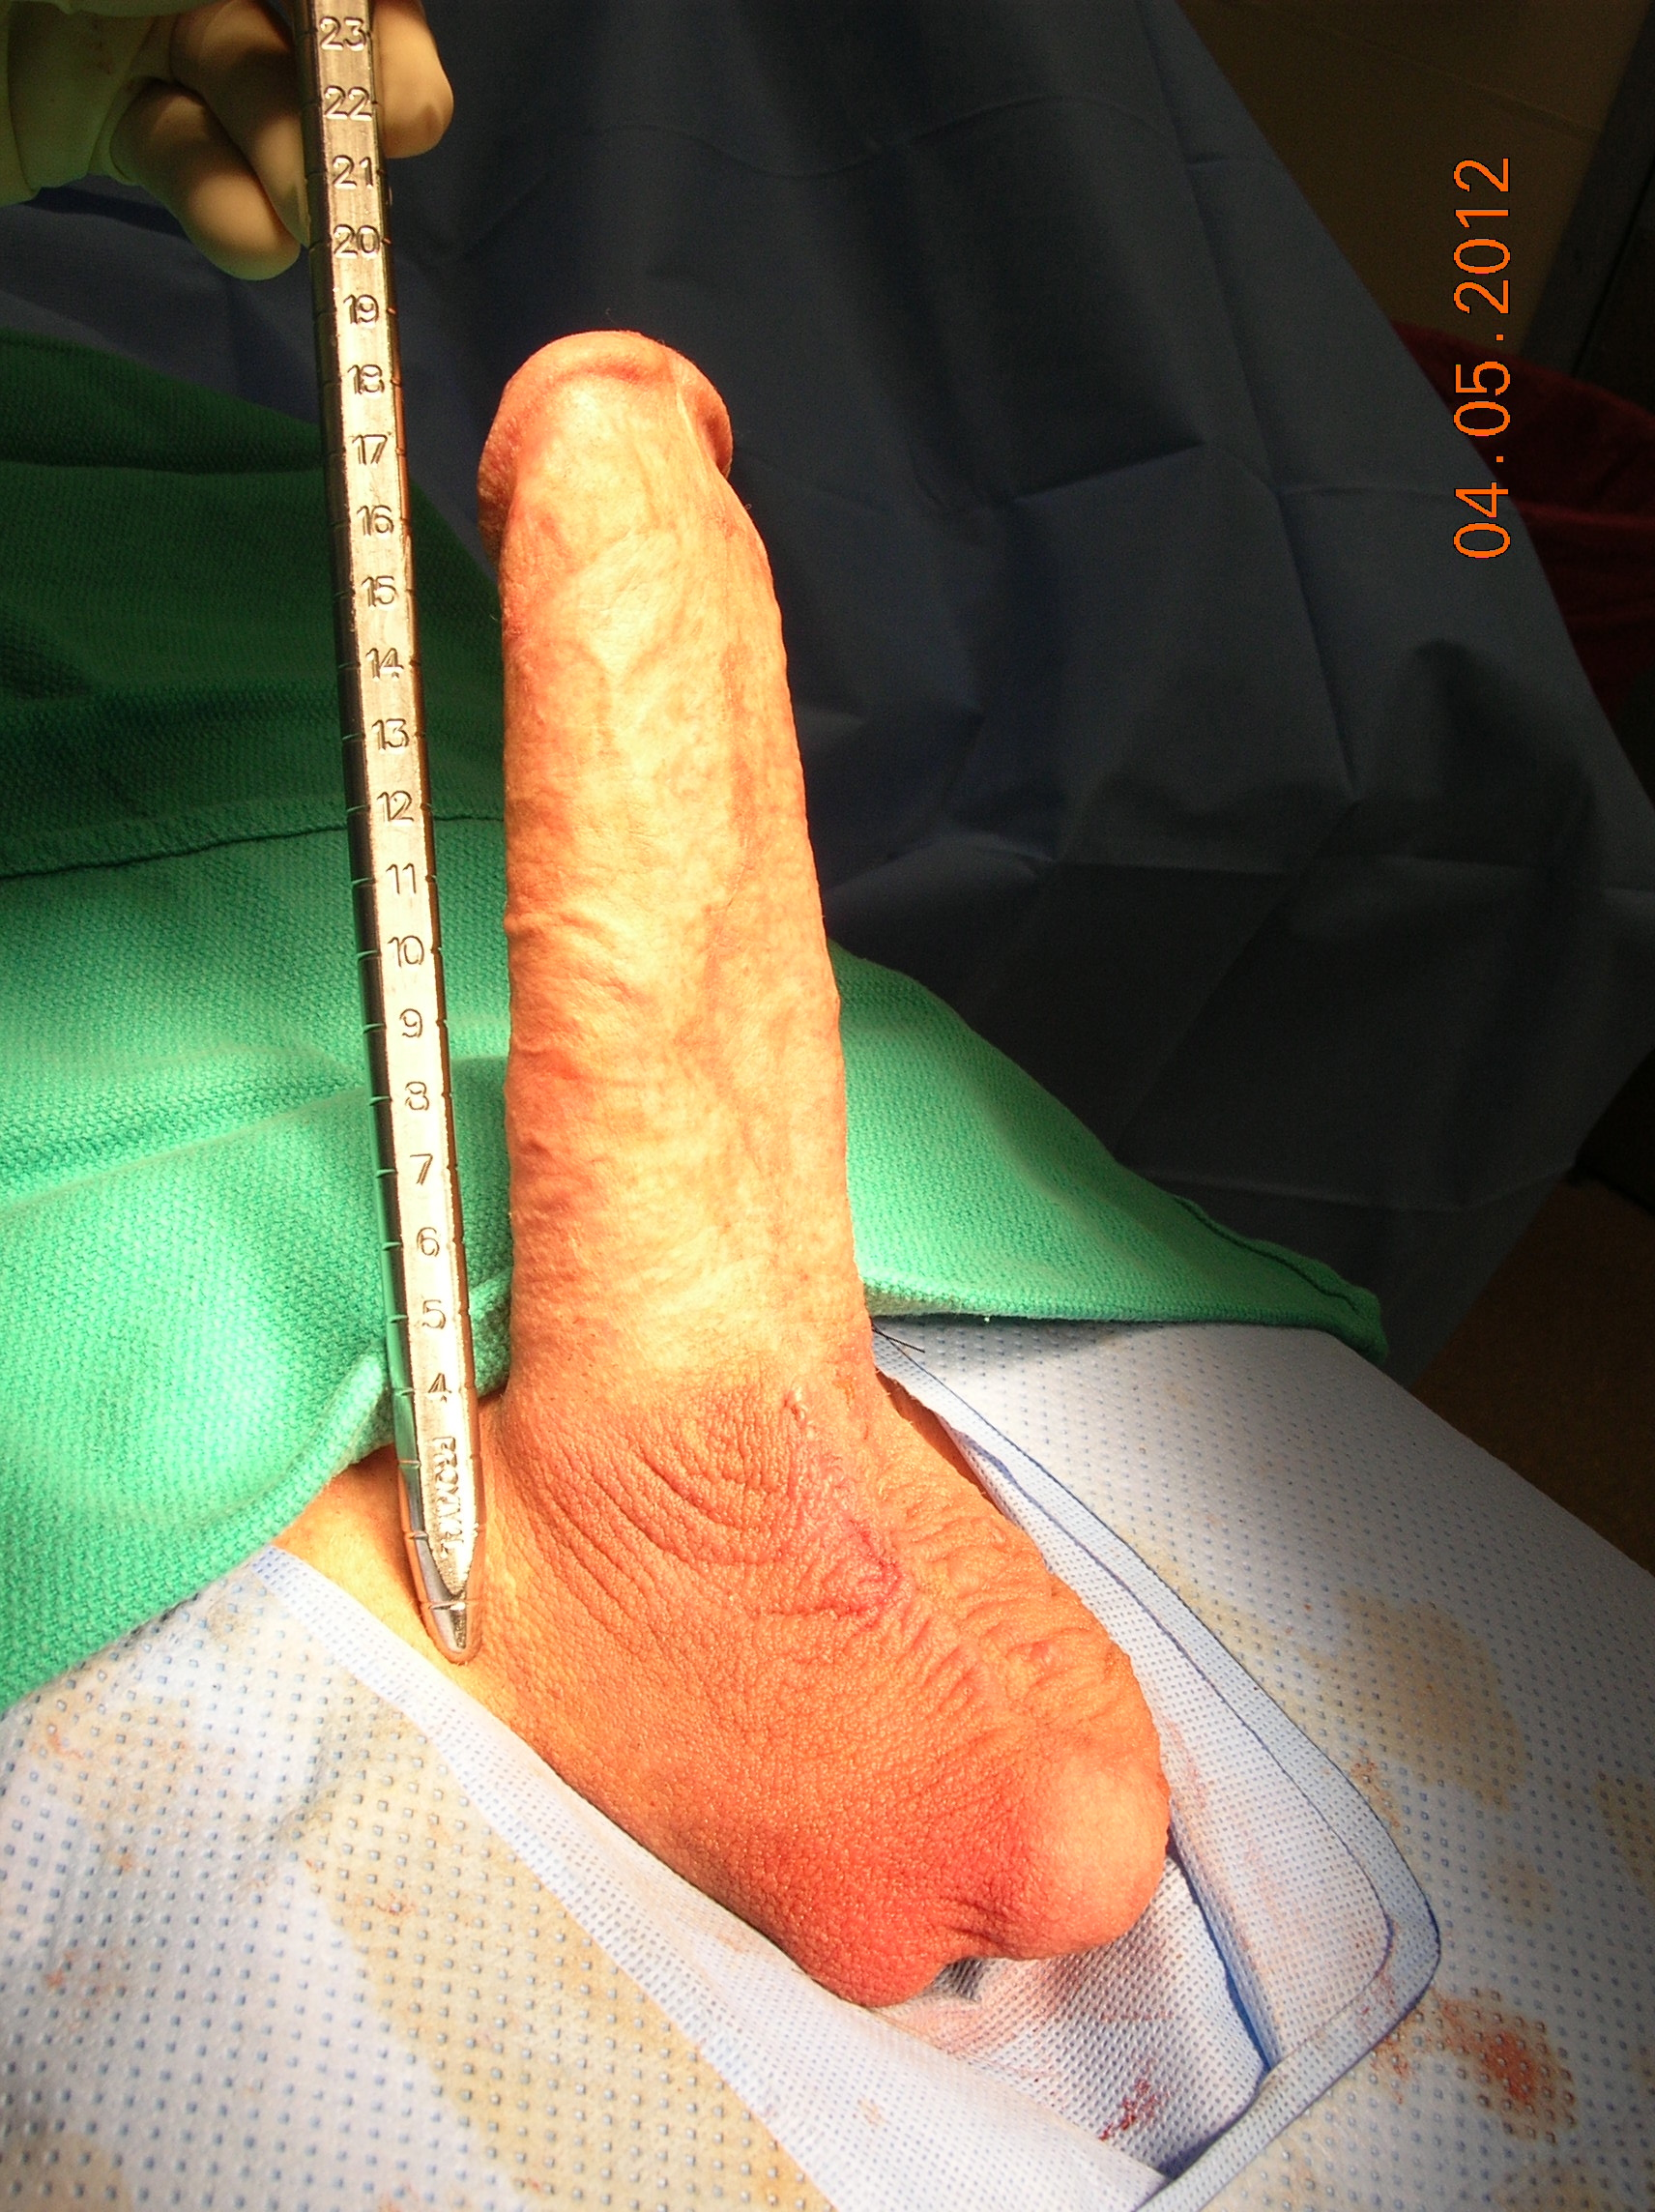 Maximum Penile Length & Girth by Dr. Garber